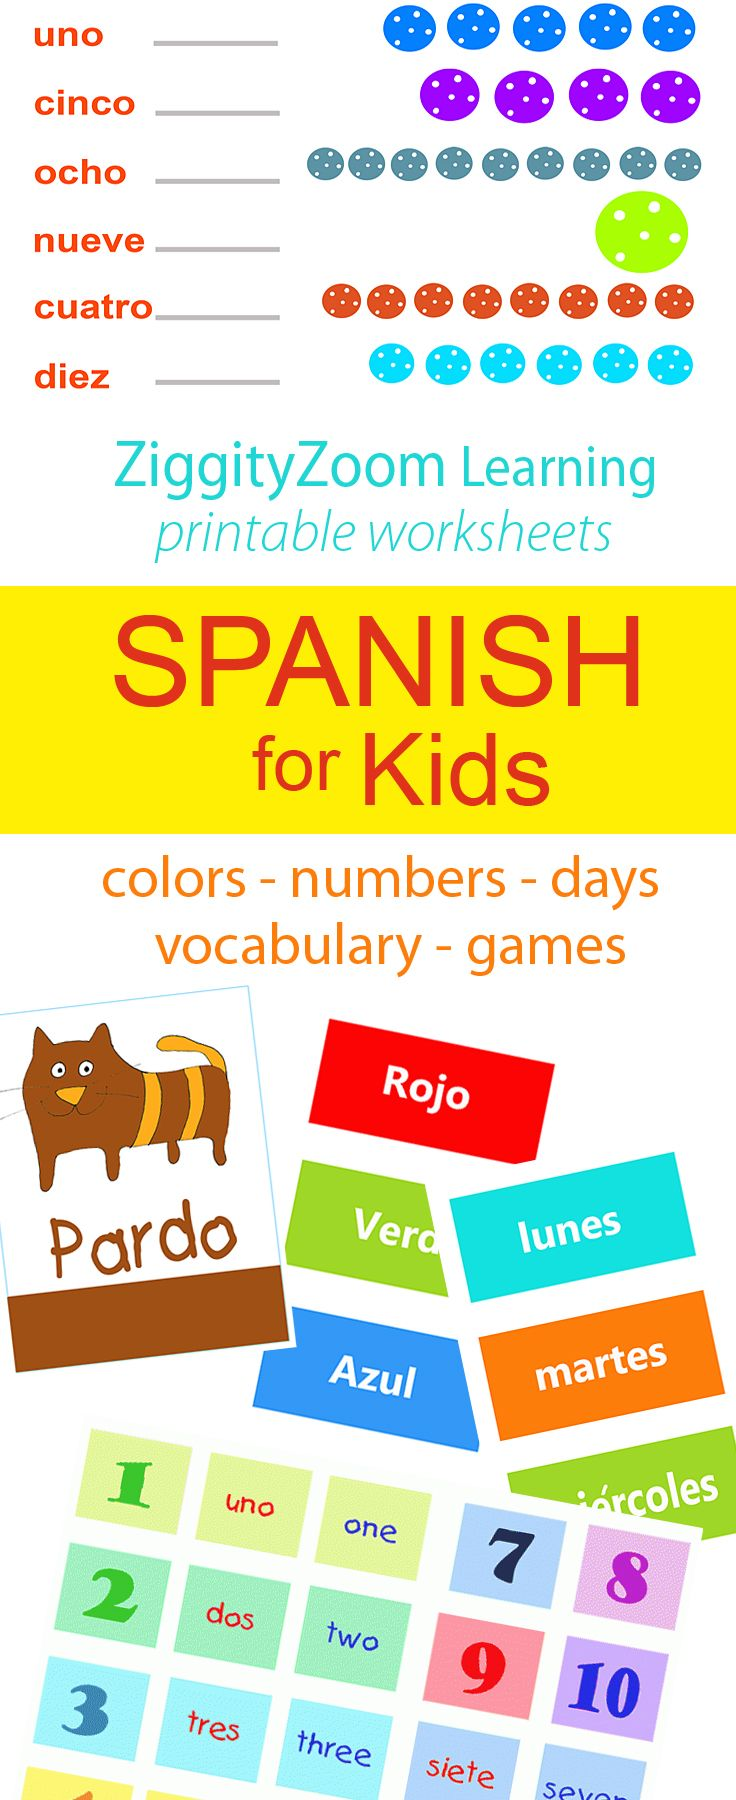 Spanish colors for preschool - Free Printable Spanish Worksheets For Kids Lots Of Beginner Printables For Learning Spanish Or English